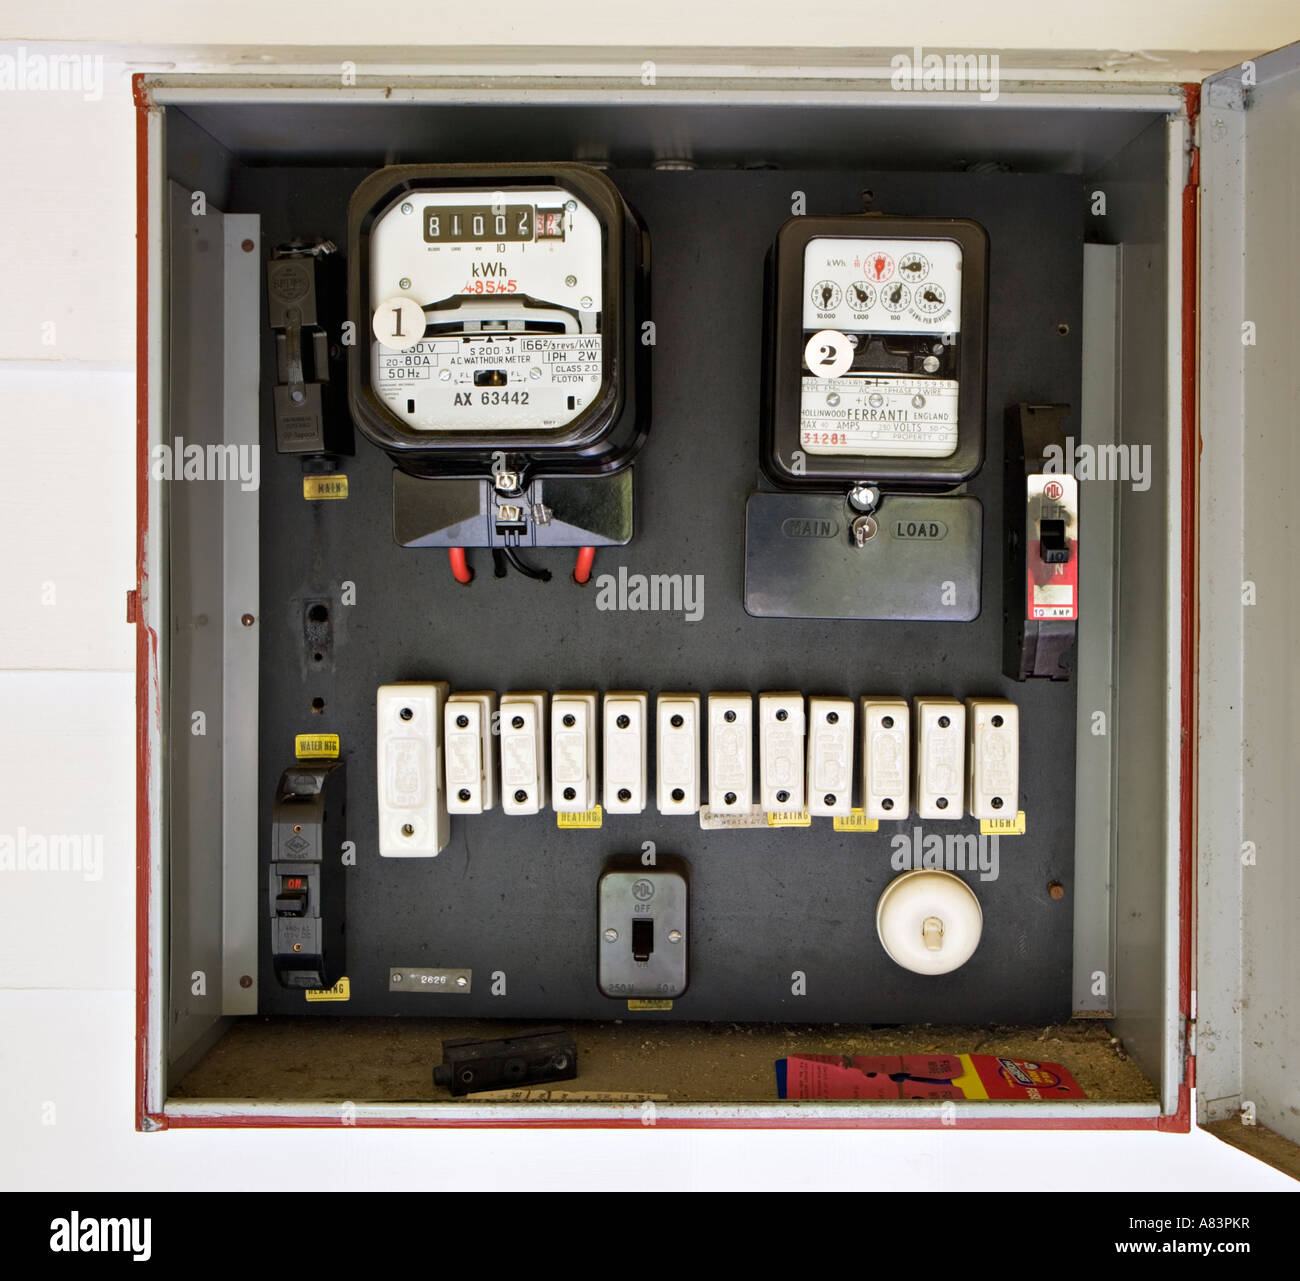 old fuses fuse box stock photos old fuses fuse box stock images rh alamy  com change fuse fuse box change fuse fuse box